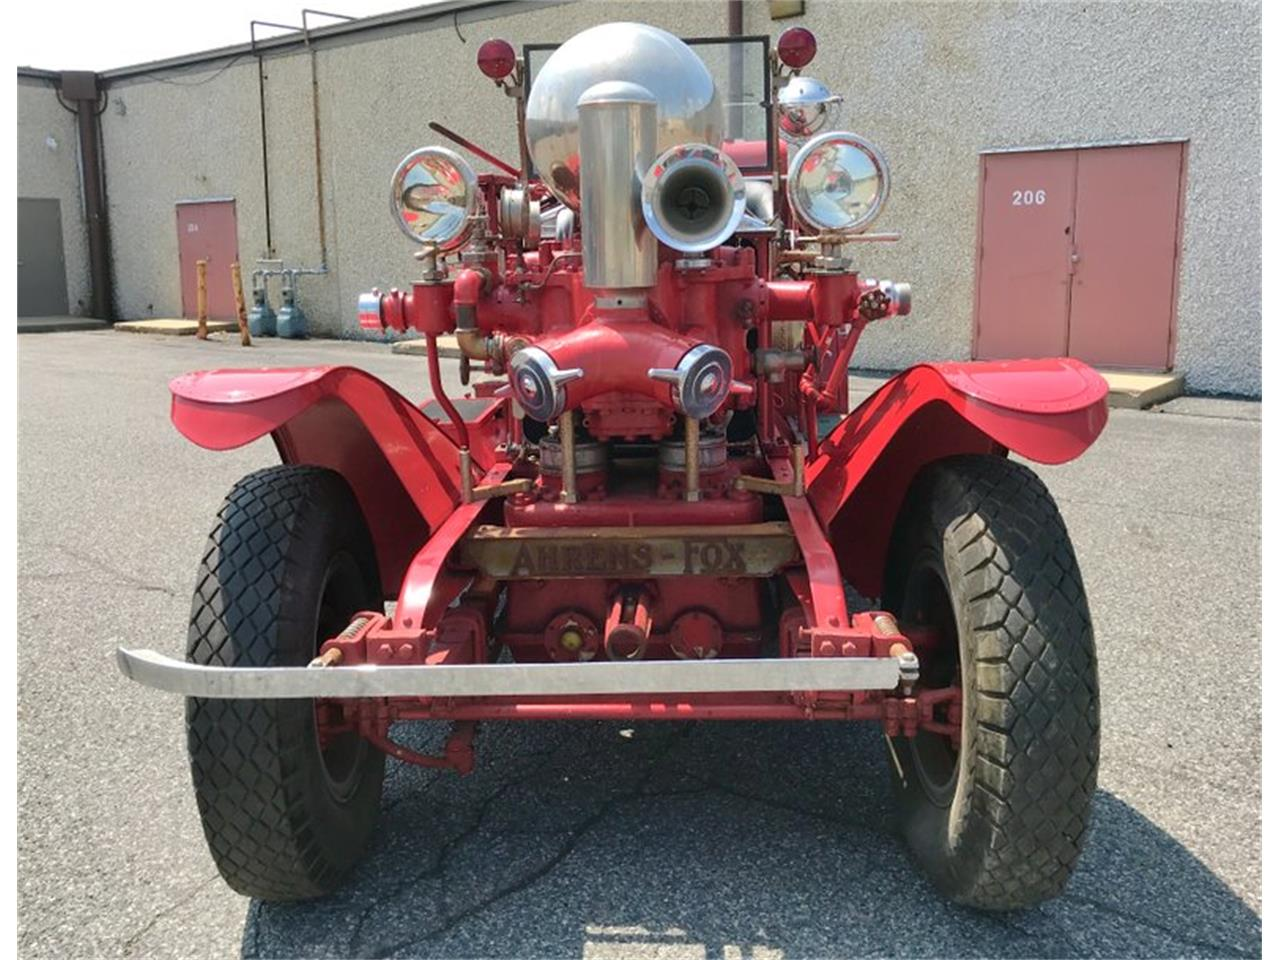 1920 Ahrens-Fox Fire Truck for sale in Morgantown, PA – photo 3